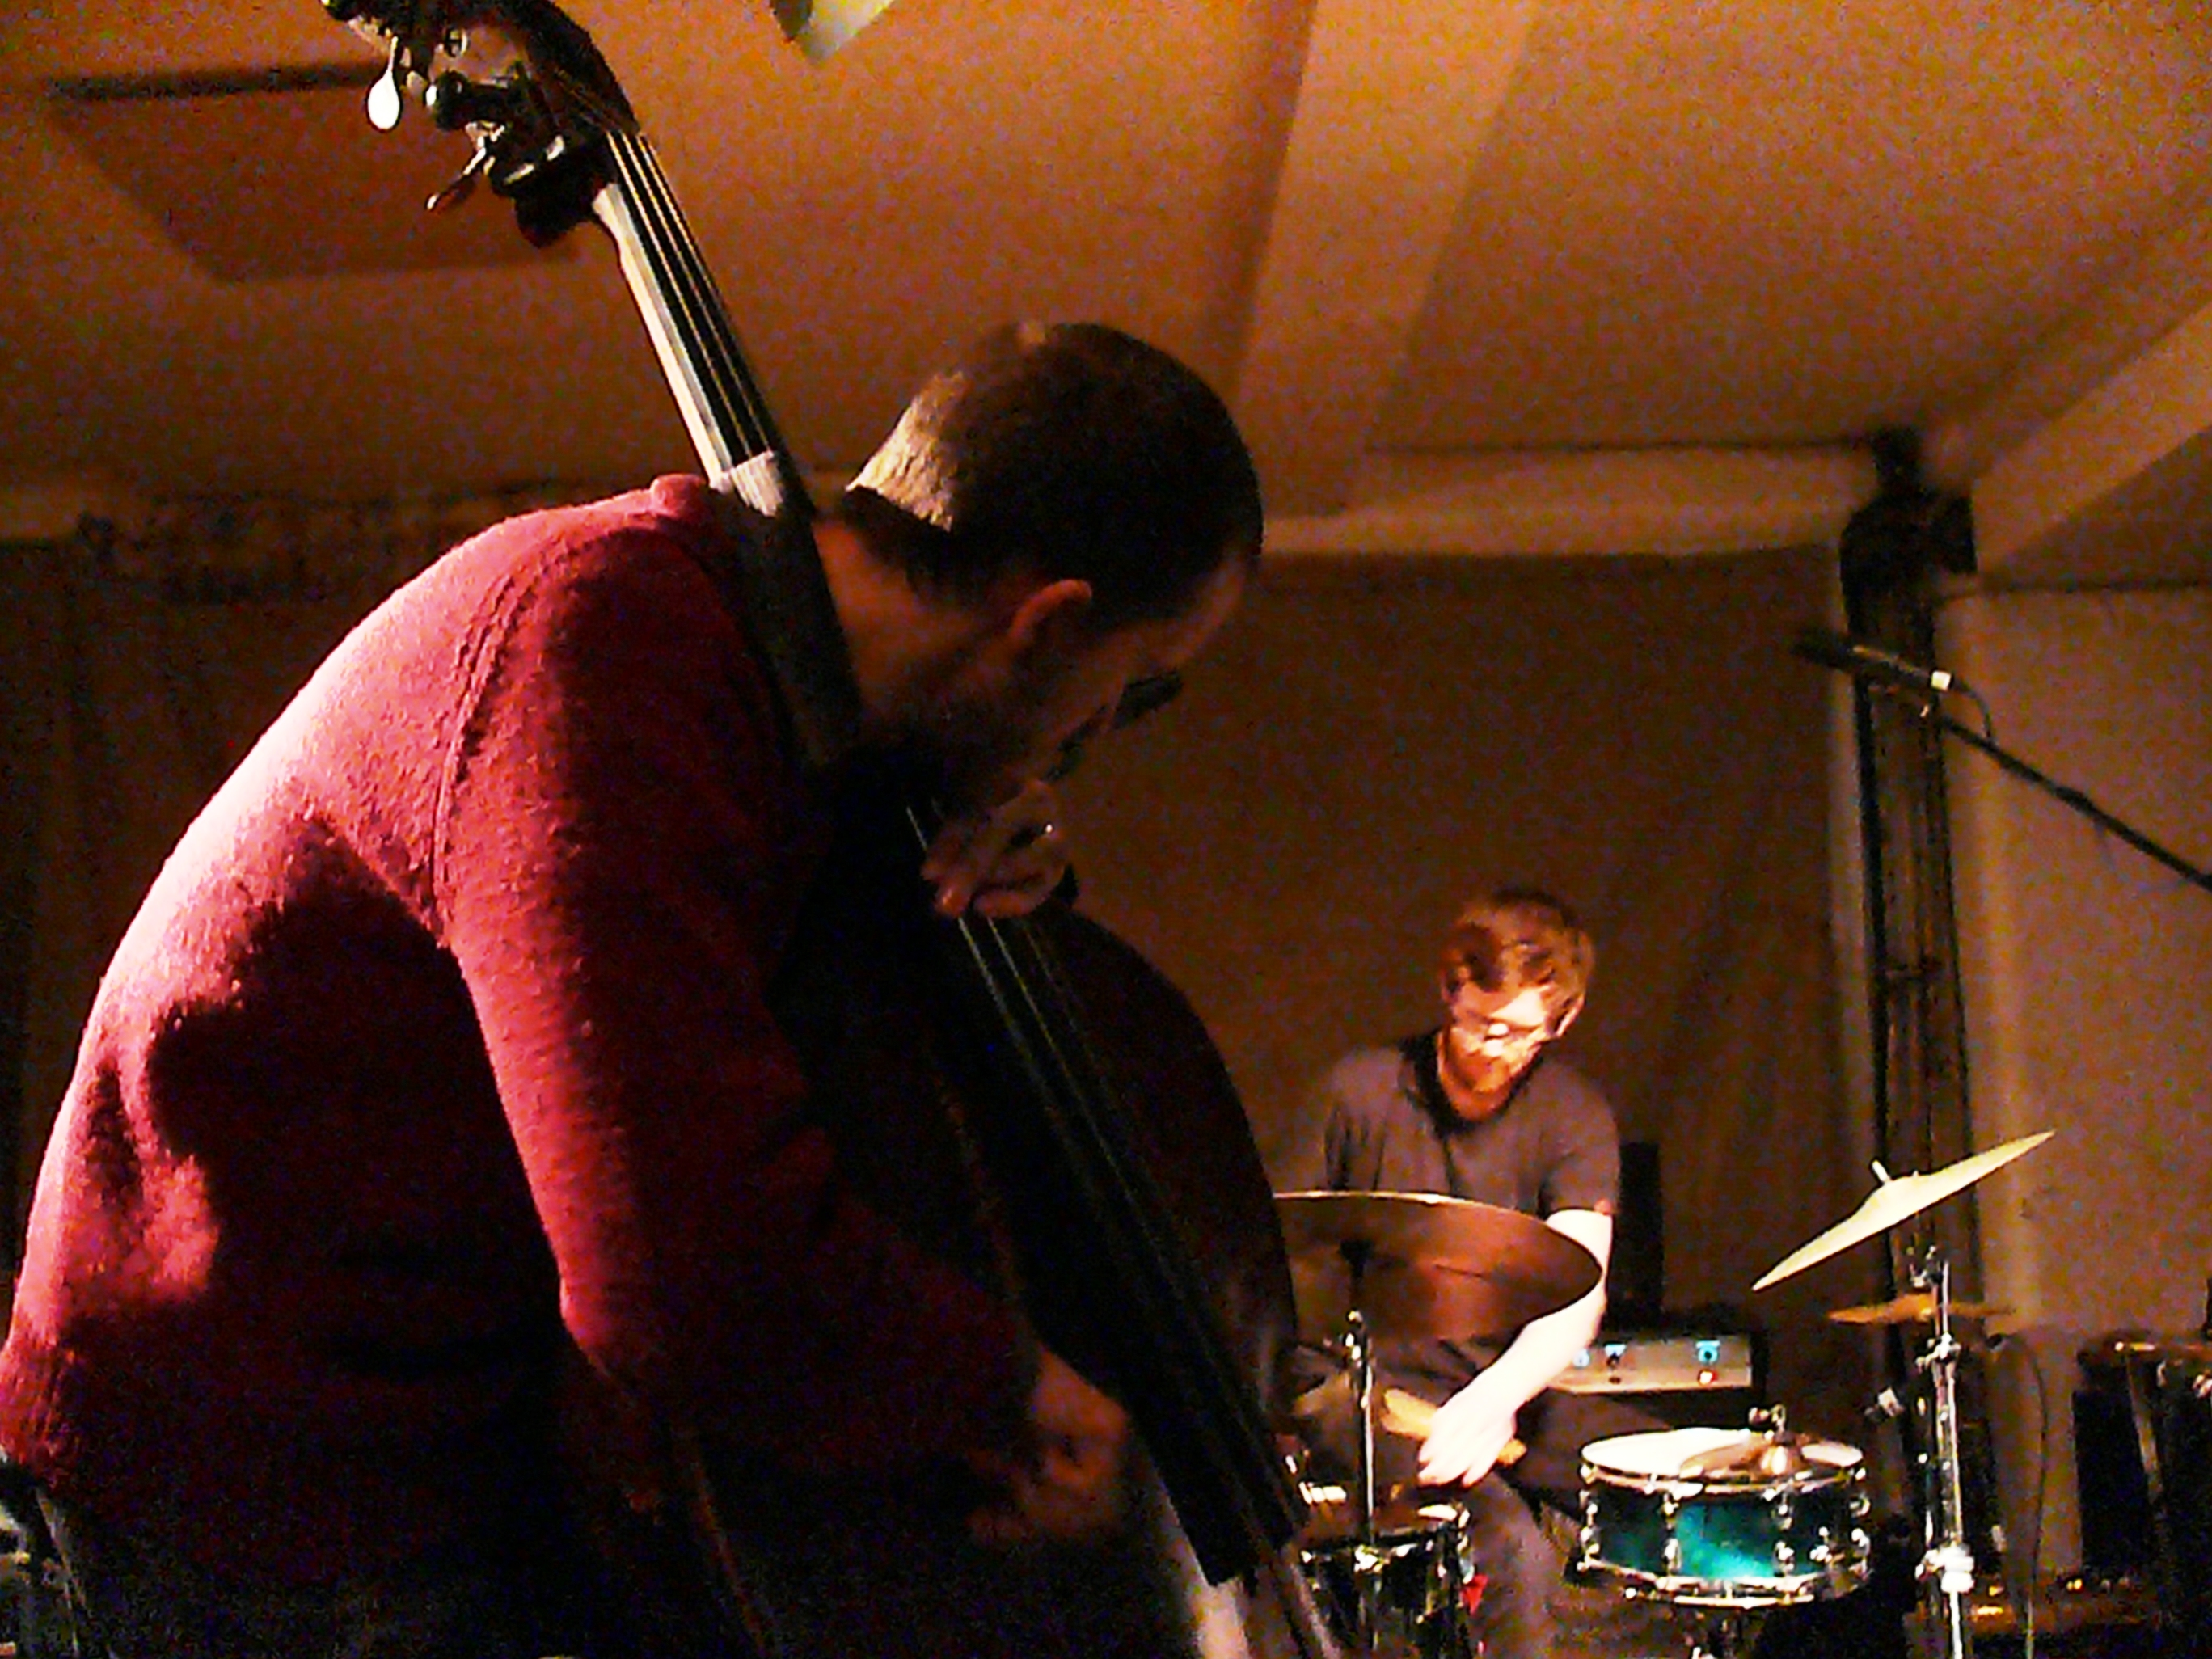 Dominic lash and dag erik knedal andersen at cafe oto, london in february 2013